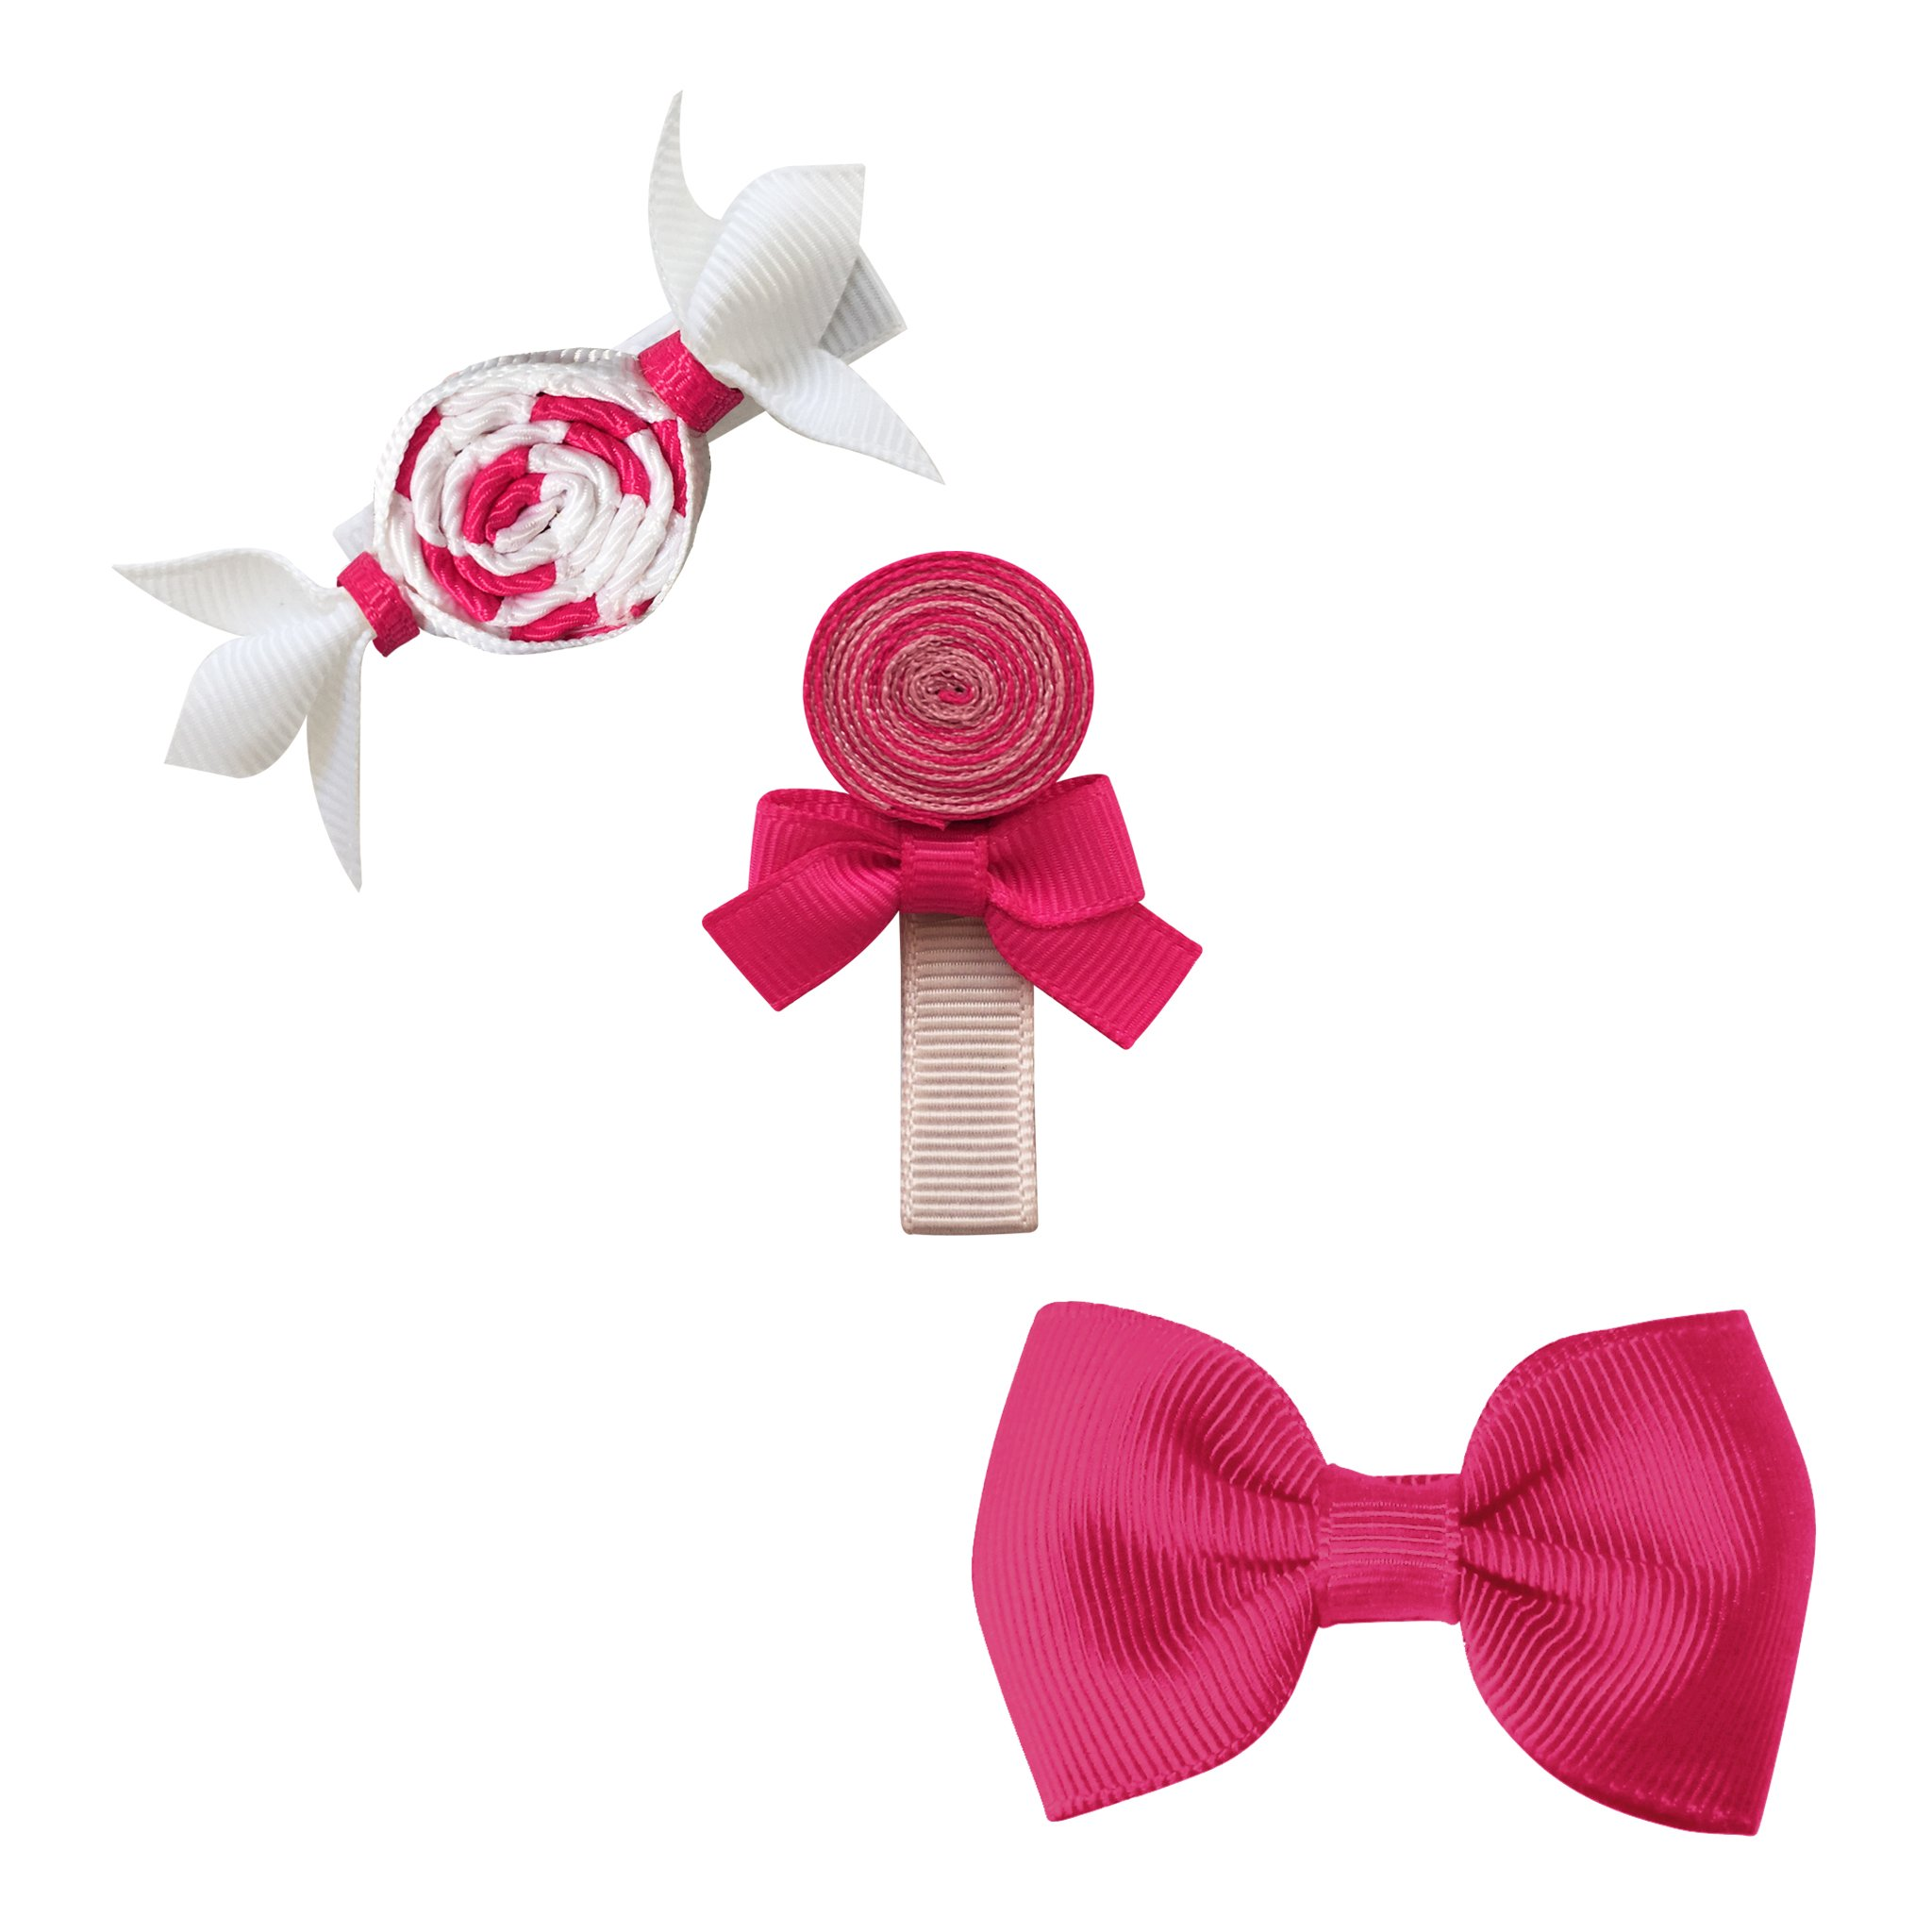 Image of Milledeux® Candy Collection gift set - Bonbon, Lollipop and Bow - azalea